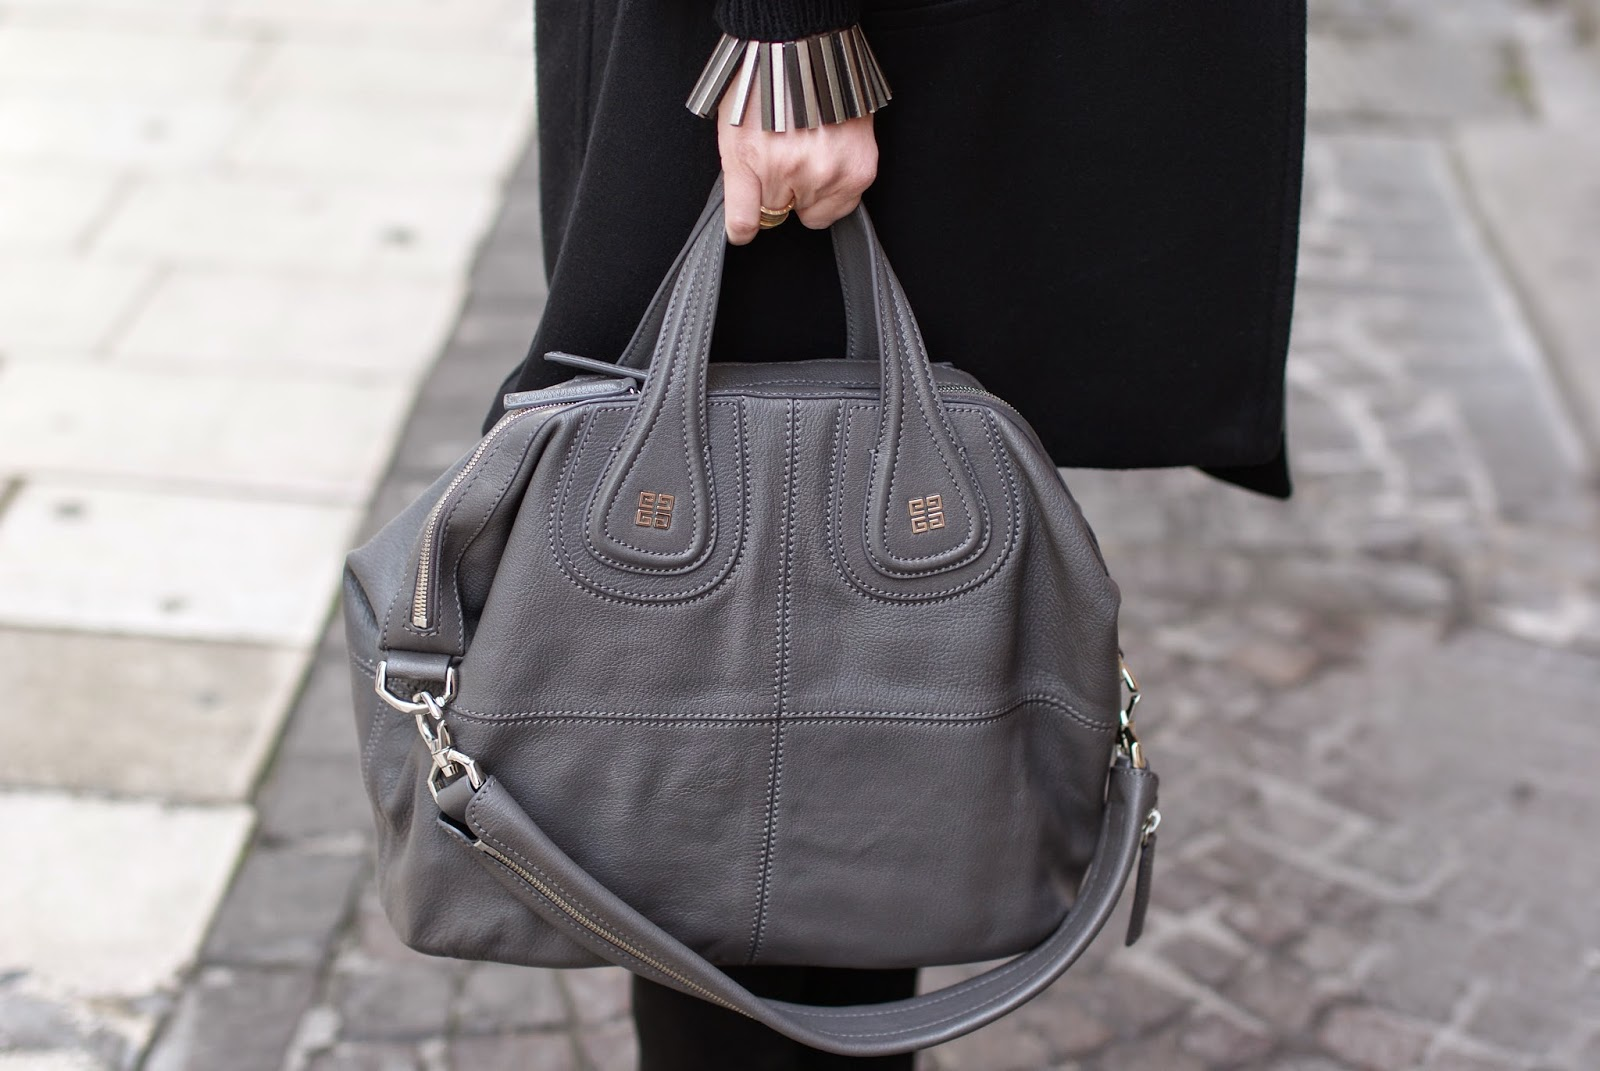 Givenchy Nightingale bag in elephant grey, Vitti Ferria Contin semi rigid bracelet, Fashion and Cookies, fashion blogger